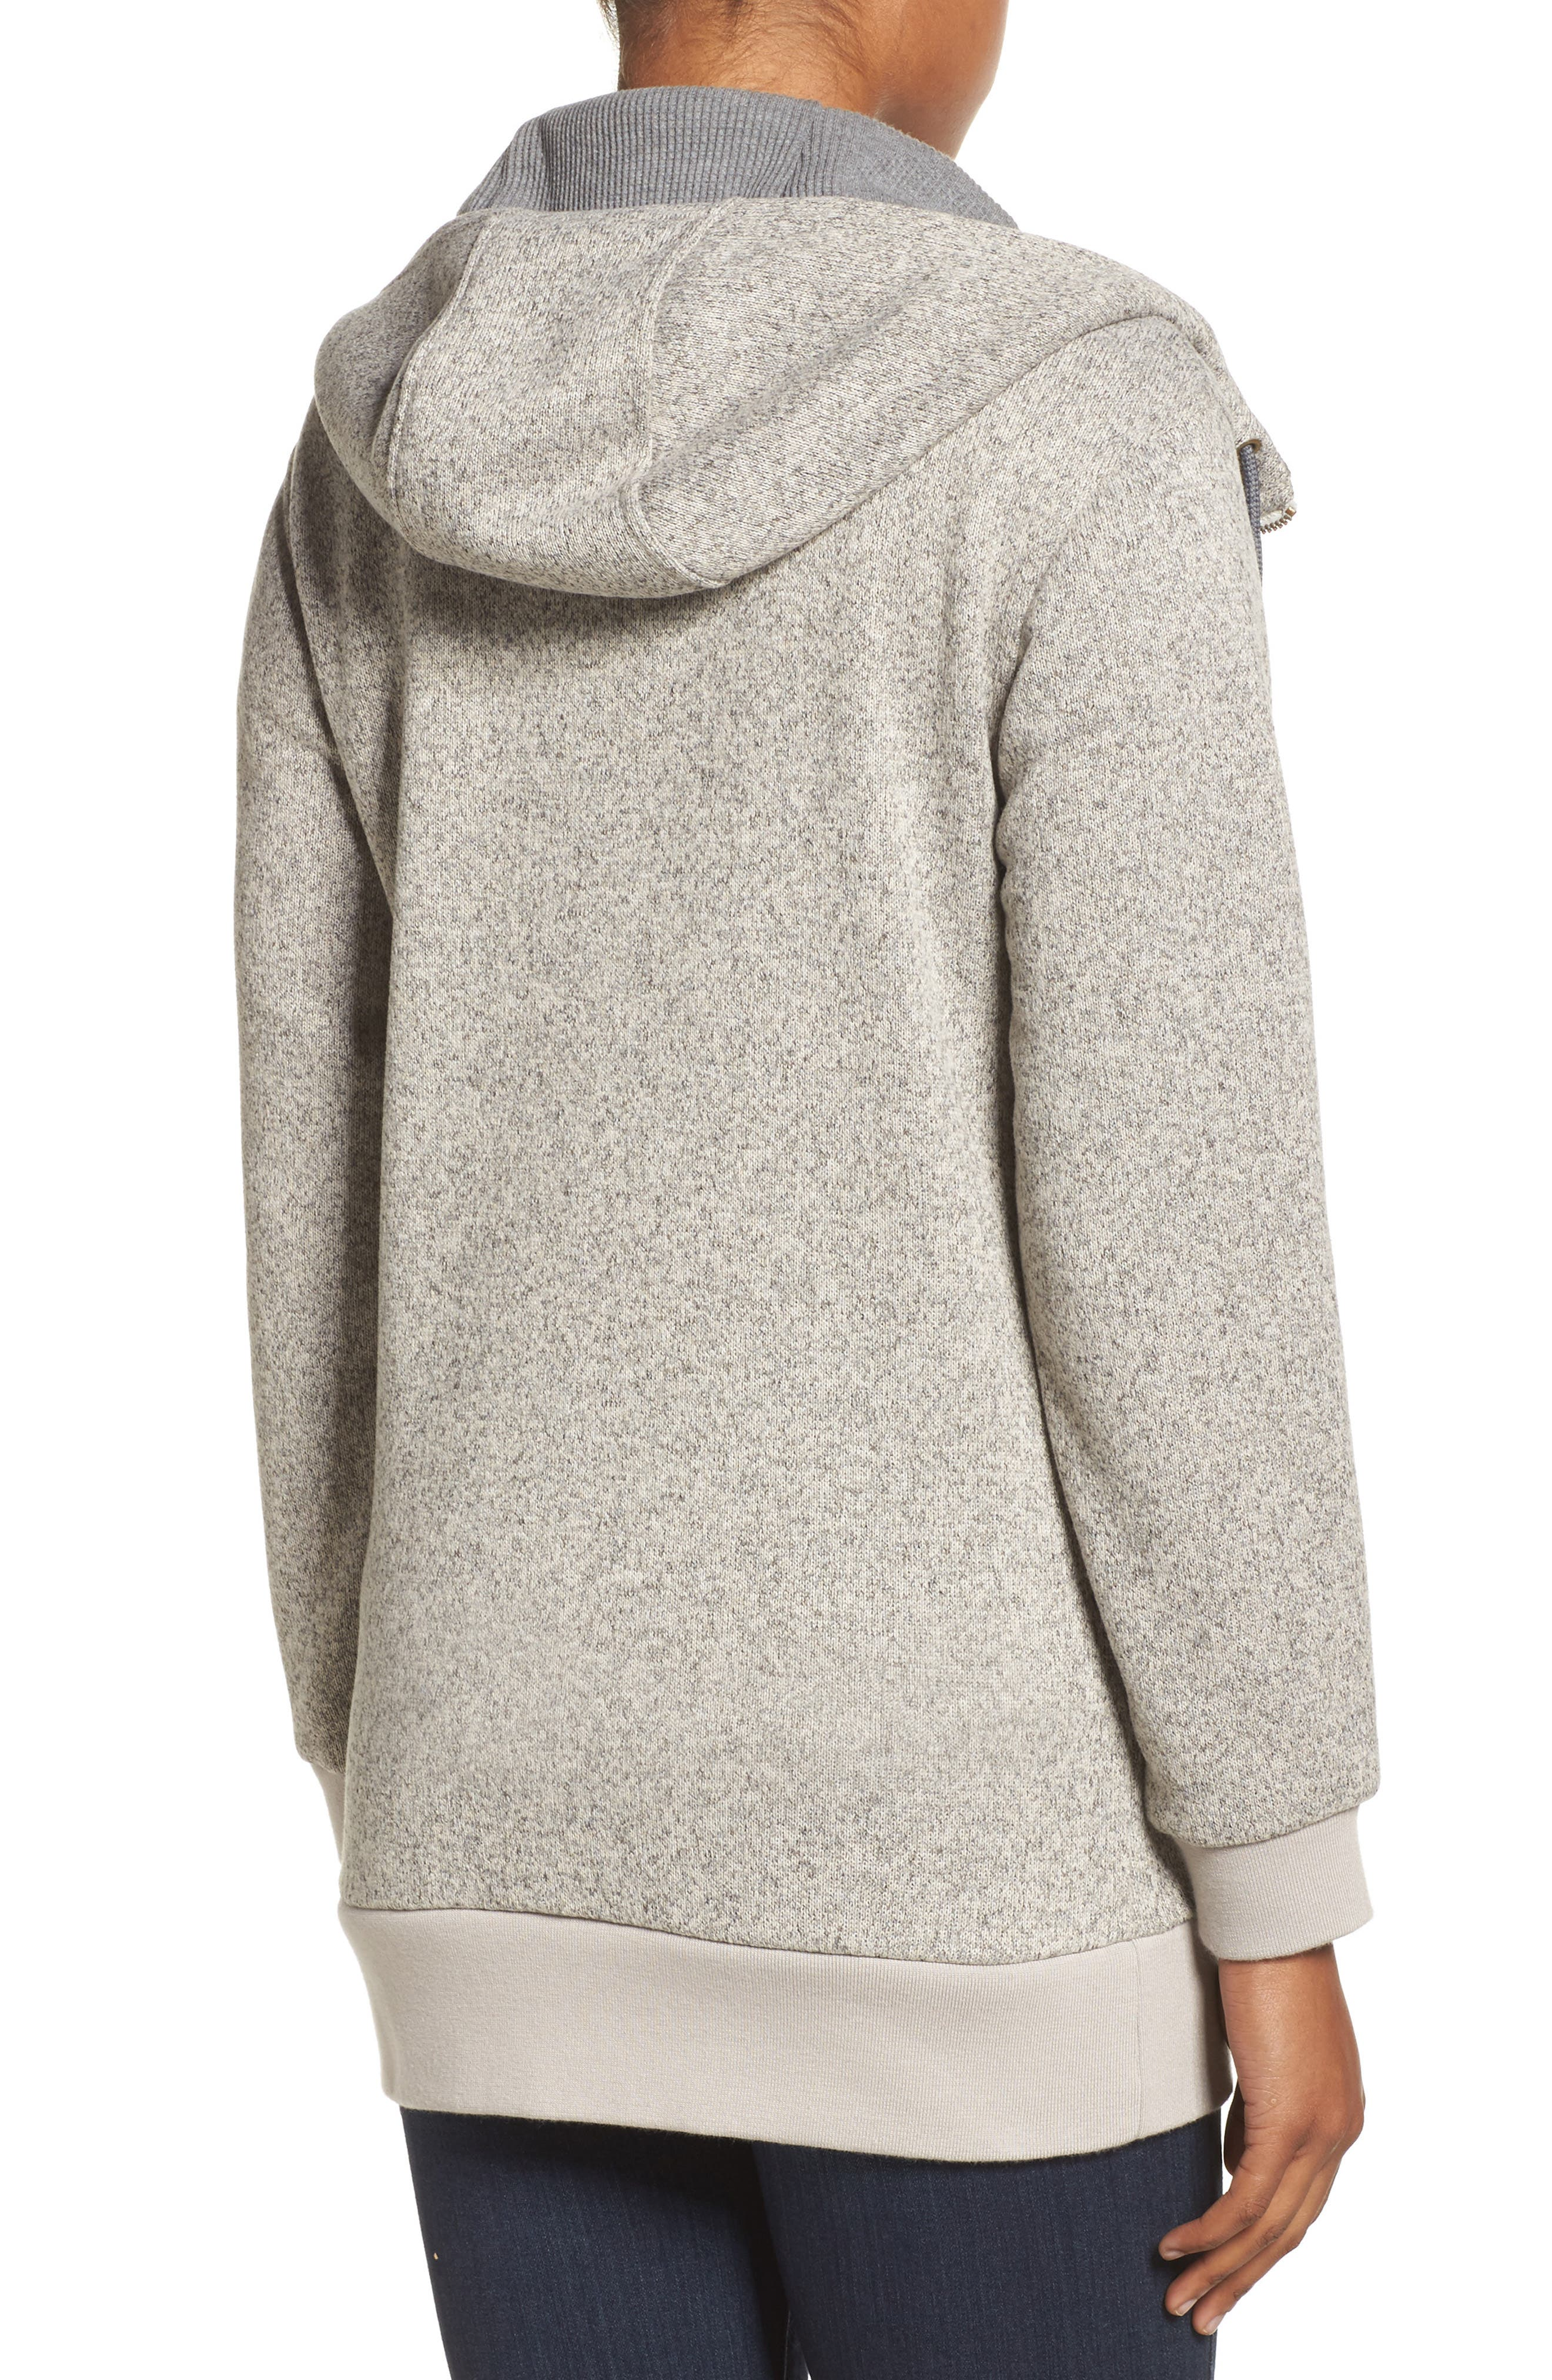 Minxy DRYRIDE Thermex Sweater Knit Fleece Hoodie,                             Alternate thumbnail 2, color,                             020